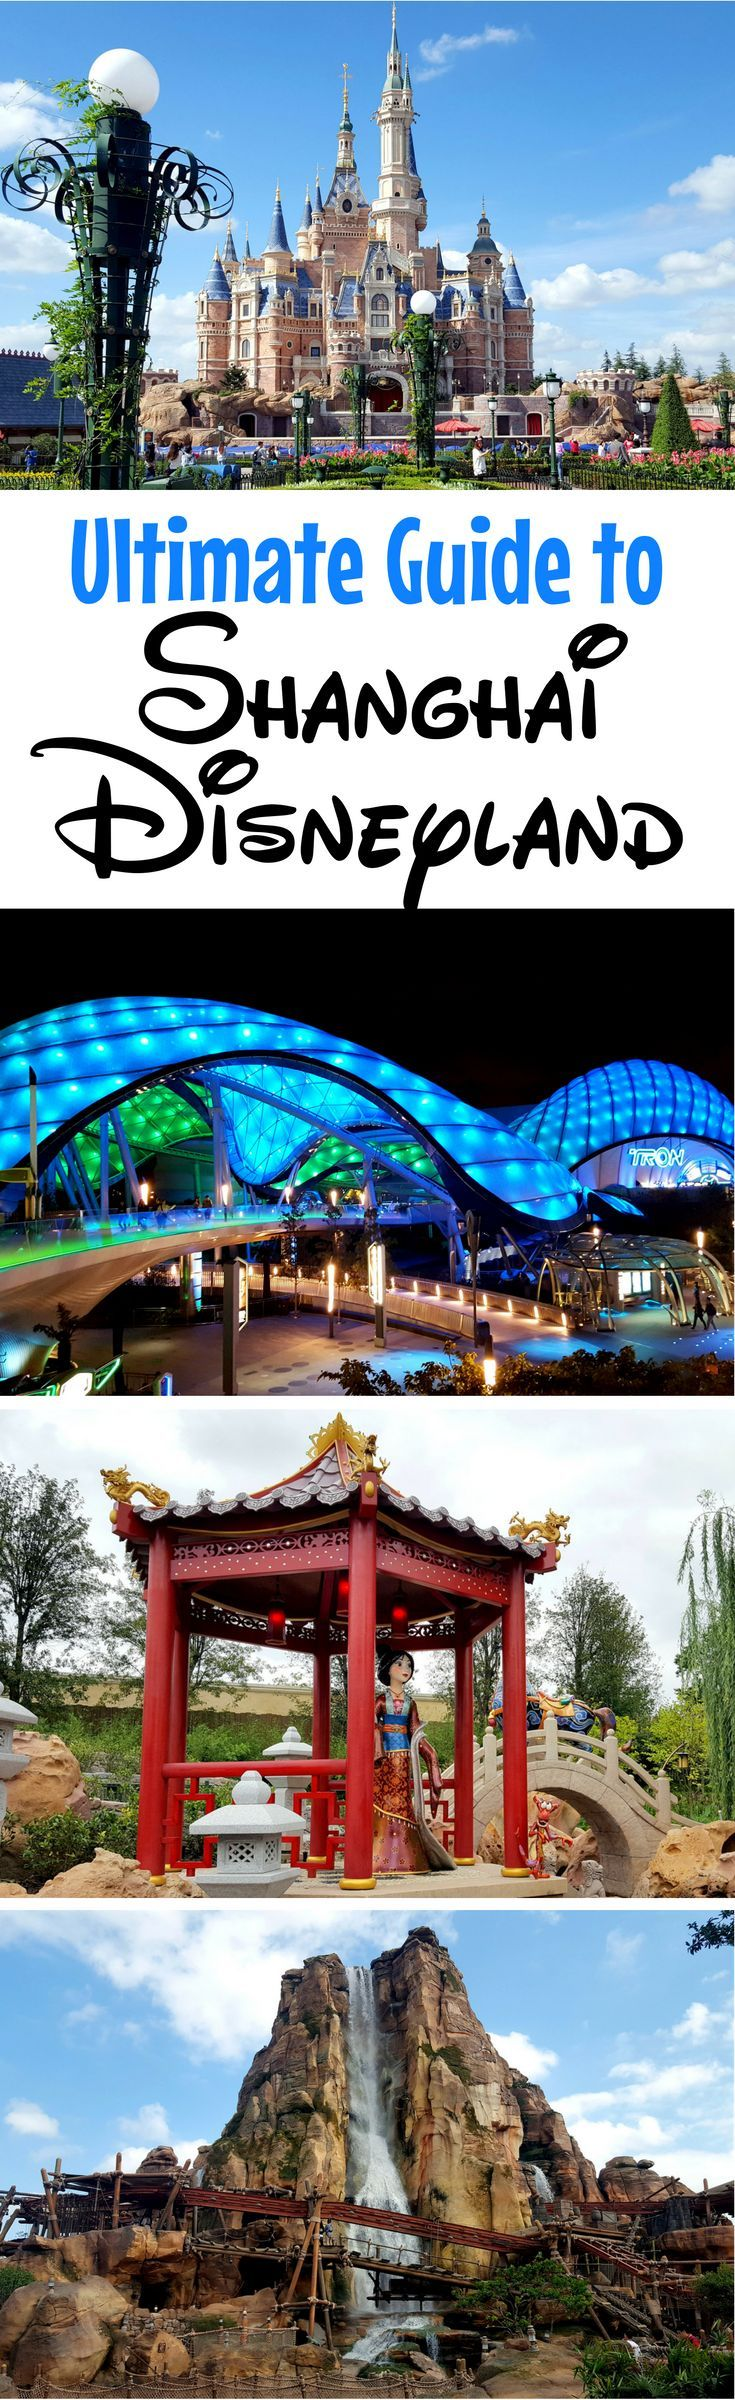 Shanghai Disneyland Guide & Review: Planning a visit to Shanghai Disney Resort in China? Take a complete photo tour of the park and castle, get insider park touring tips, and read about the unique rides like the TRON Lightcycle Power Run.